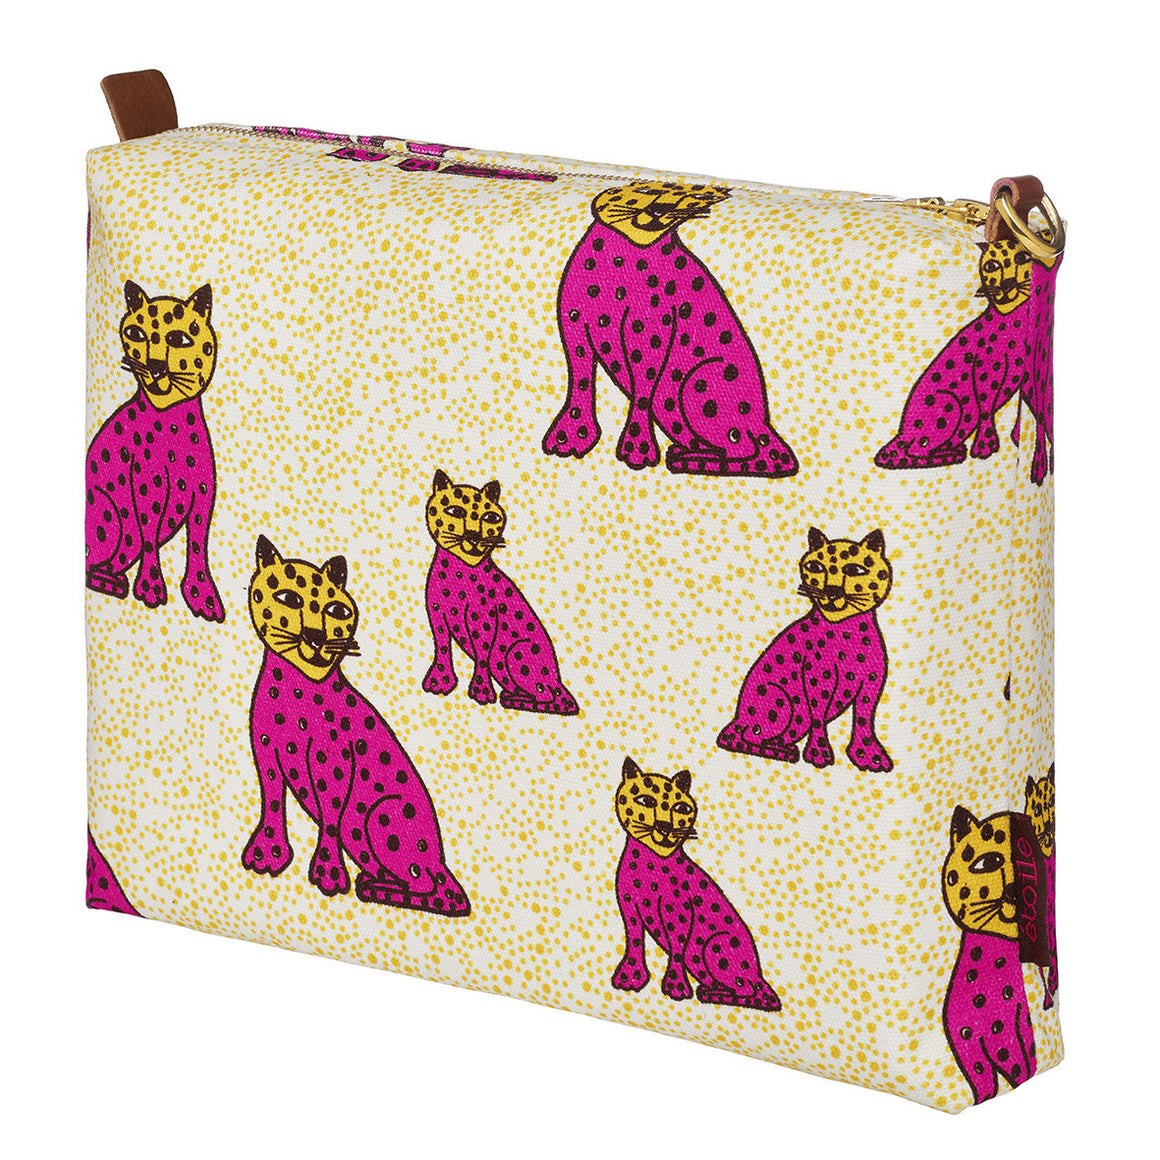 Graphic Leopard Pattern Cotton Canvas Vanity Bag In Fuchsia Pink and Mustard Yellow